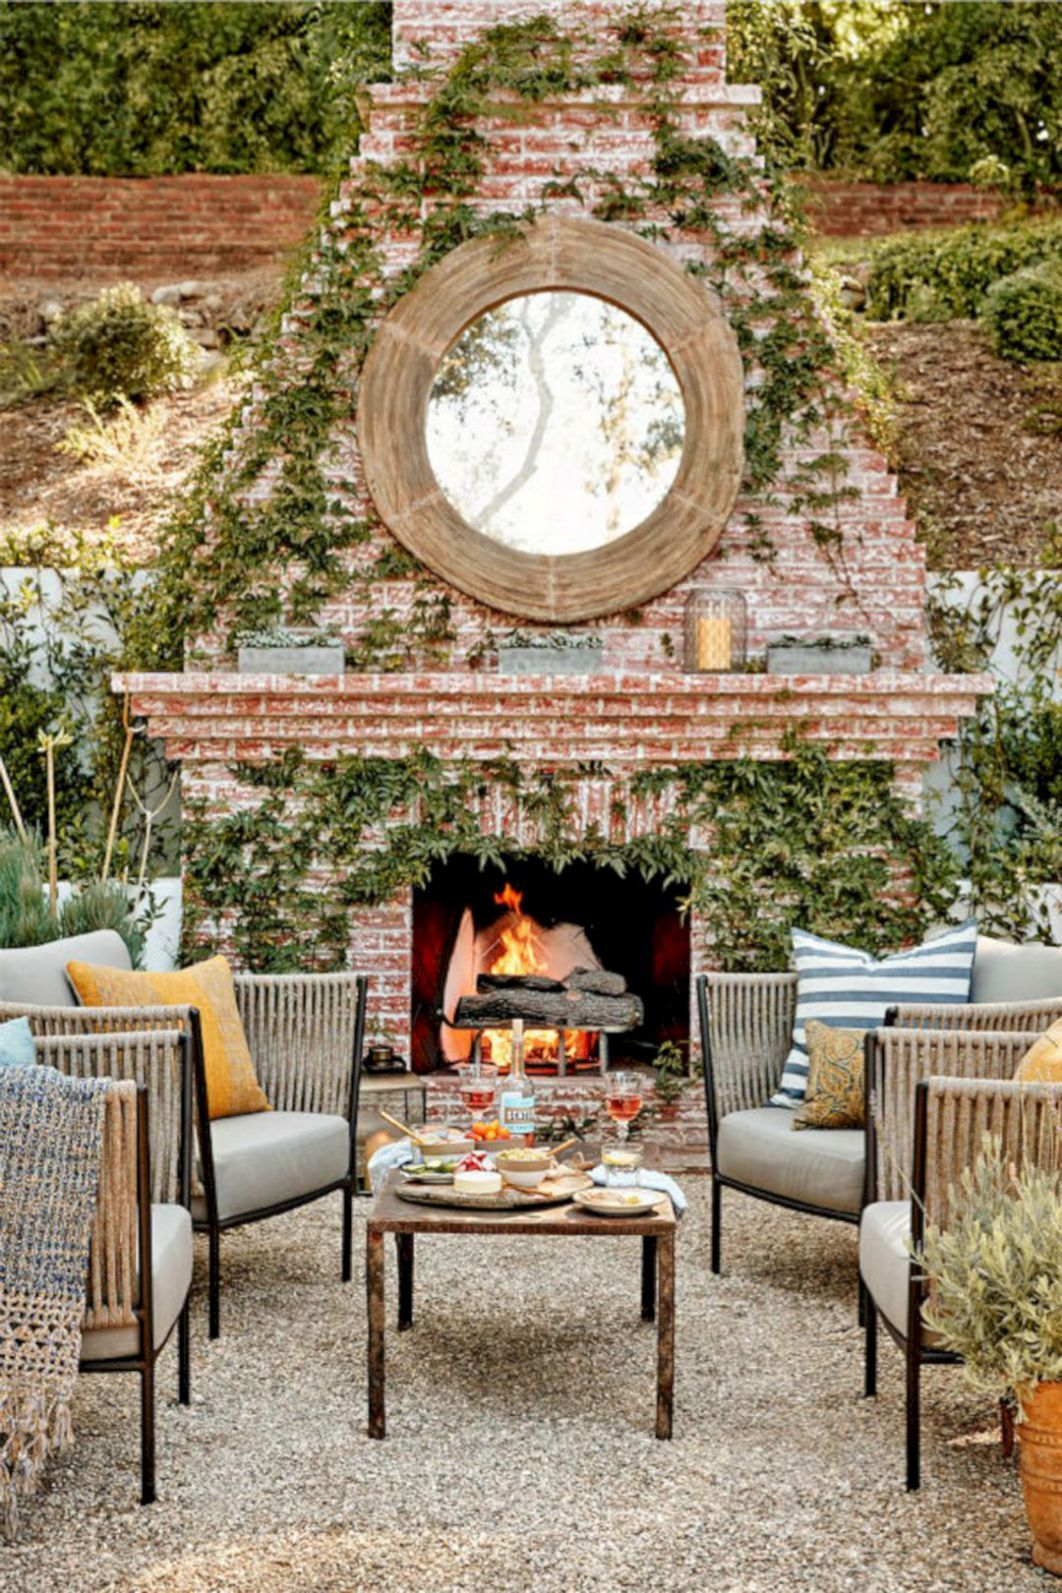 Best Ideas Of Amazing Decorating Rustic Italian Houses 19 Rustic Outdoor Fireplaces Outdoor Fireplace Designs Backyard Fireplace